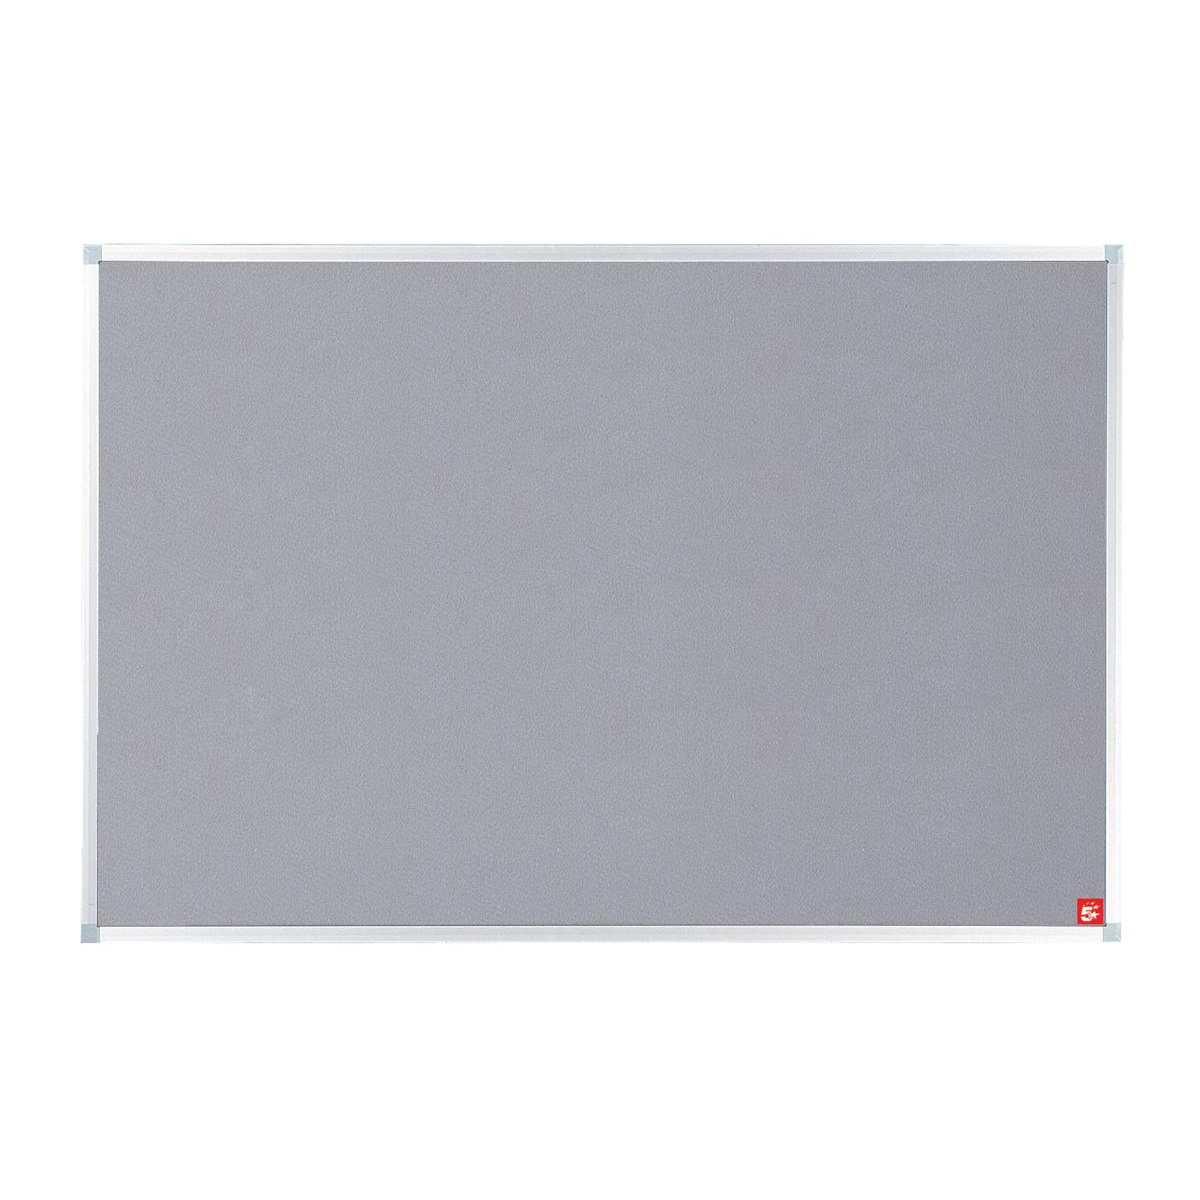 Felt 5 Star Office Felt Noticeboard with Fixings and Aluminium Trim W1200xH900mm Grey